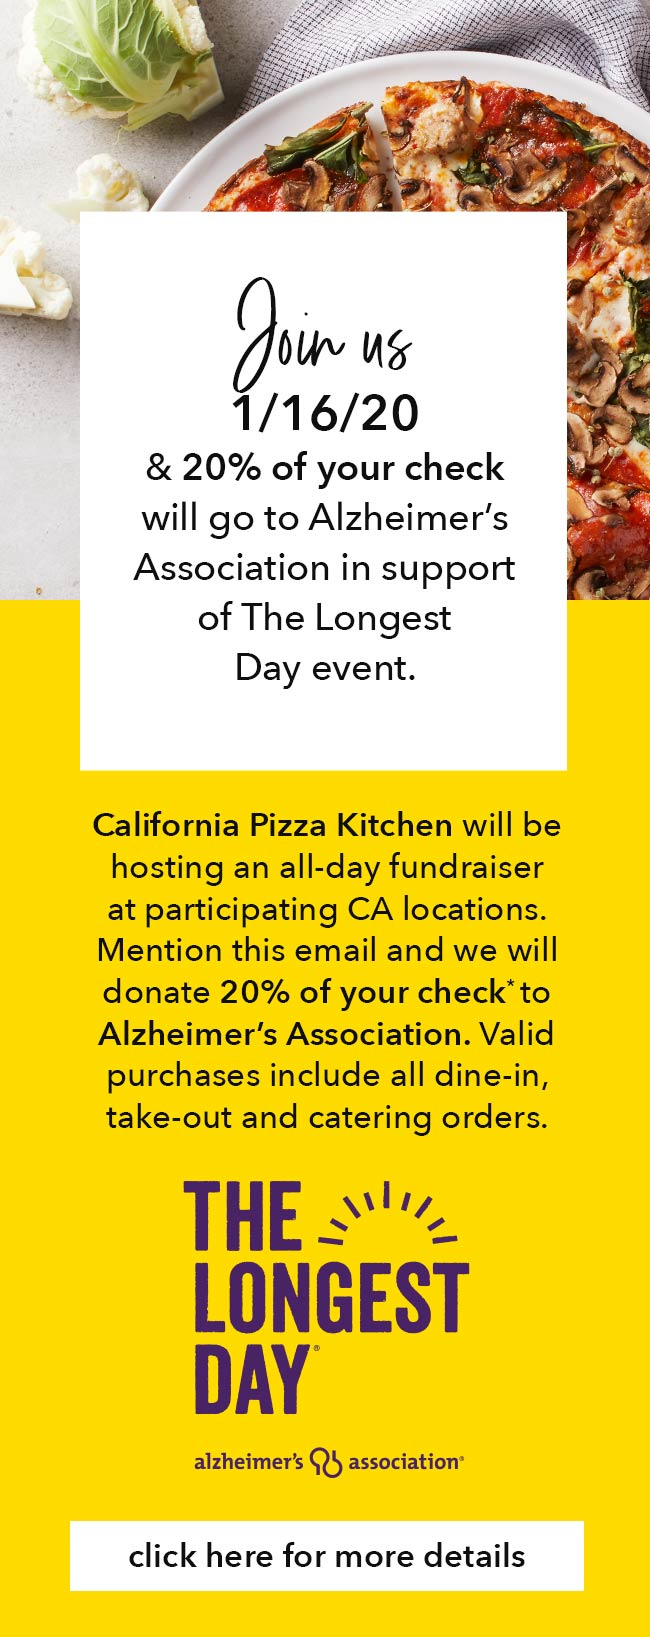 Join us 1/16/20 & 20% of your check will go to Alzheimer's Association in support of The Longest Day event. California Pizza Kitchen will be hosting an all-day fundraiser at participating CA locations. Mention this email and we will donate 20% of your check* to Alzheimer's Association. Valid purchases include all dine-in, take-out and catering orders. Click here for more details